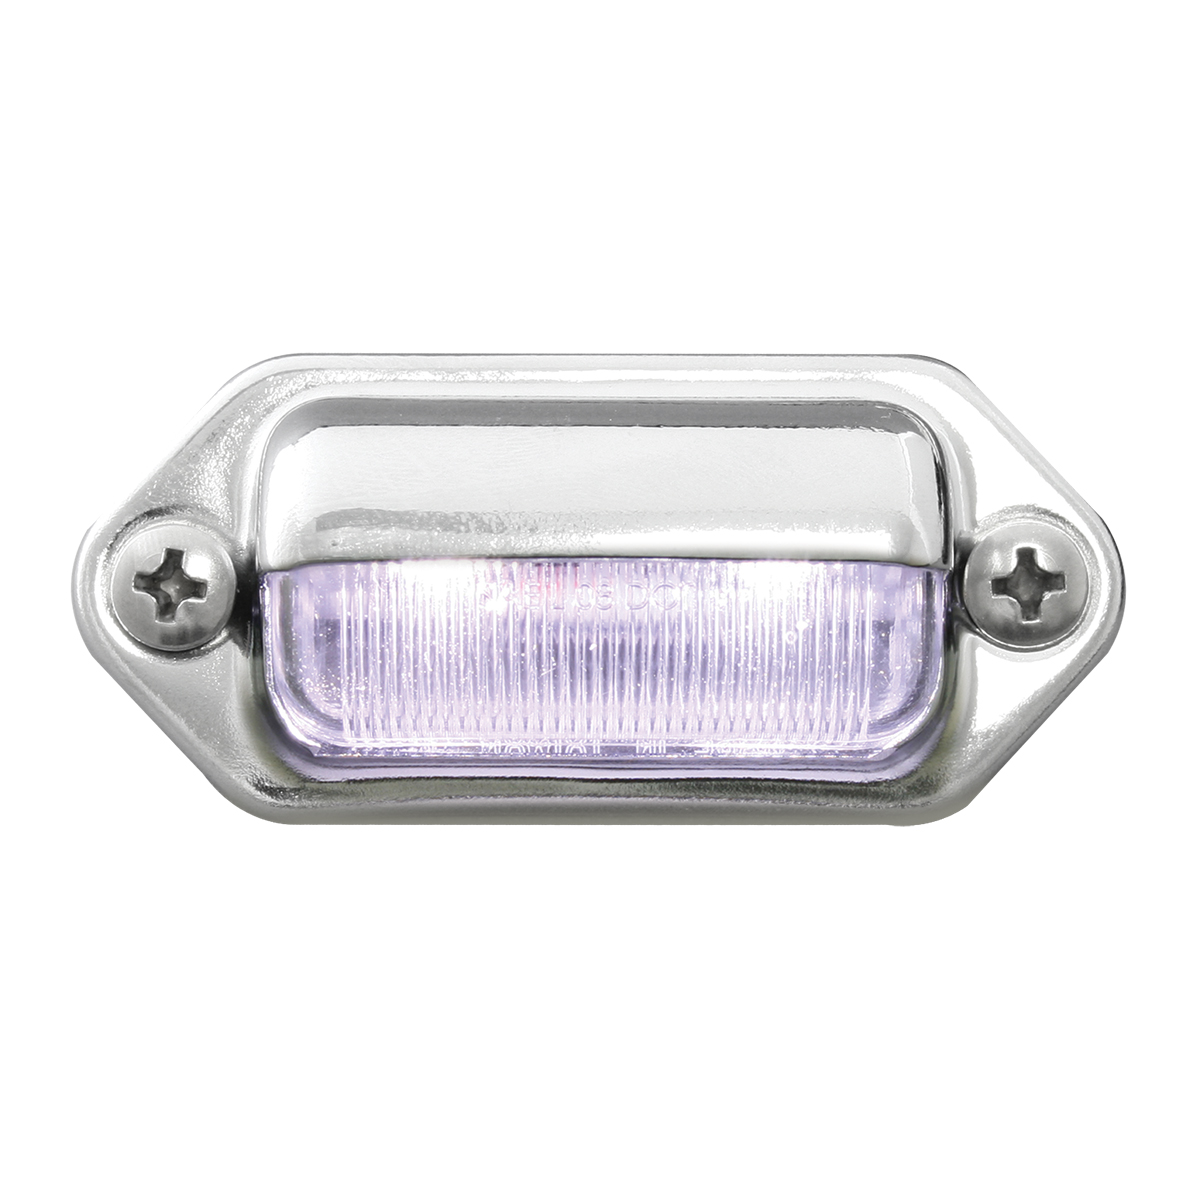 81735 License Plate LED Light